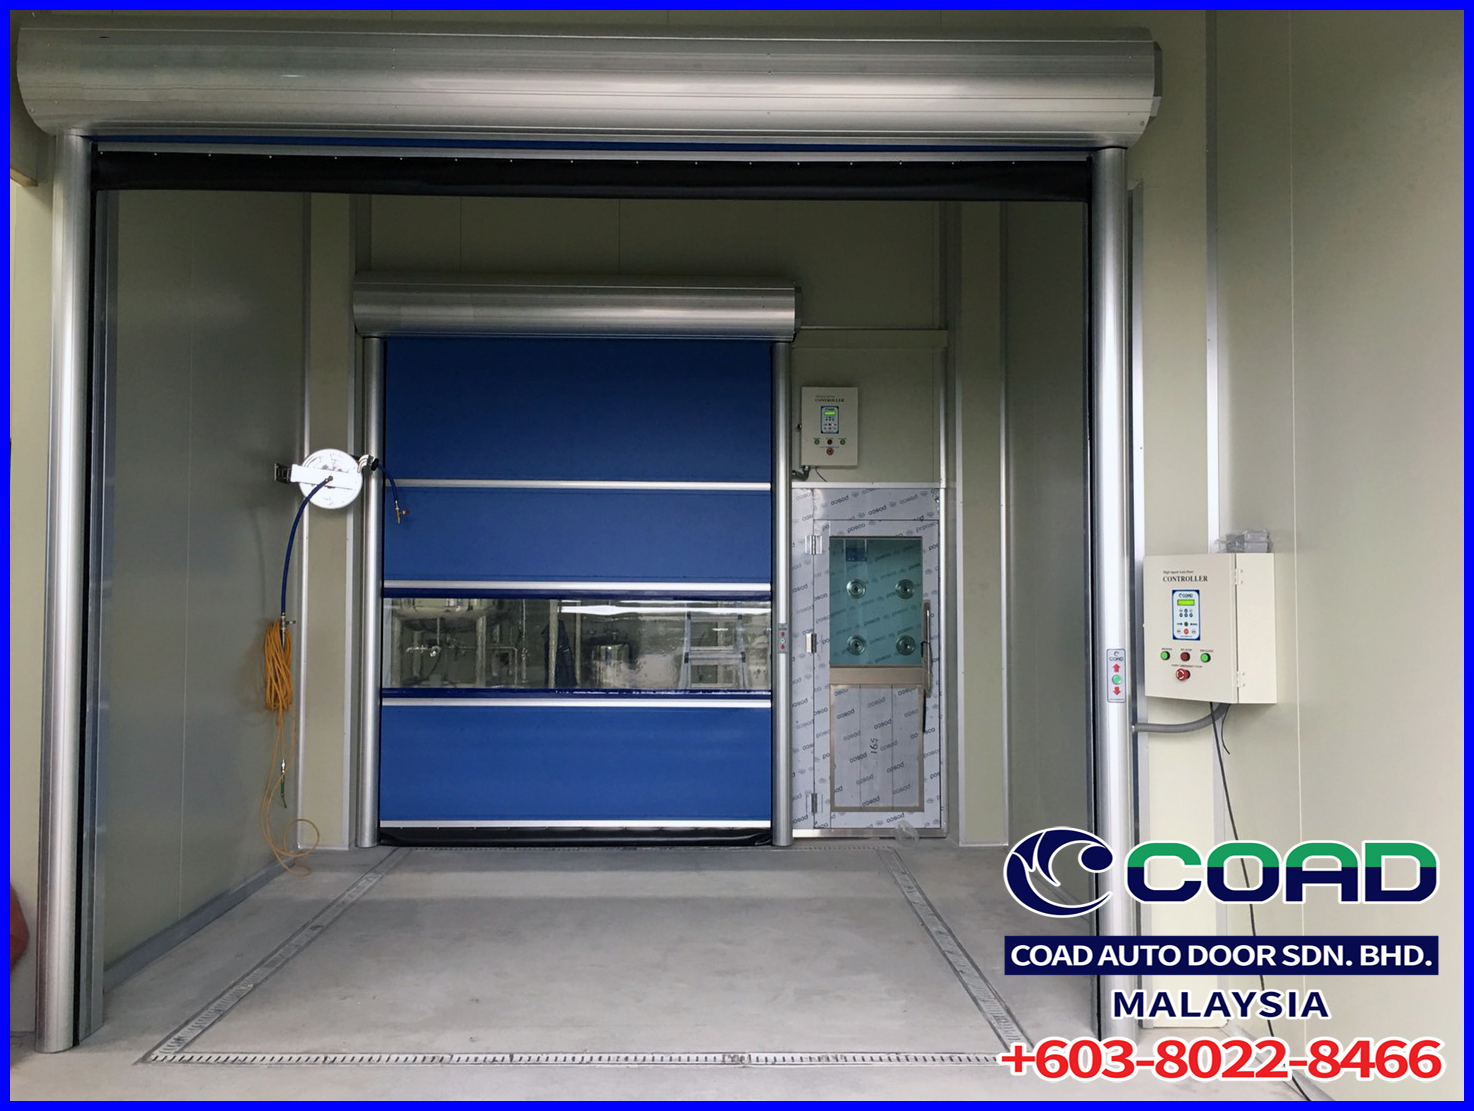 Coad High Speed Door Malaysia, High Speed Door, High Speed Door Malaysia,  Rapid